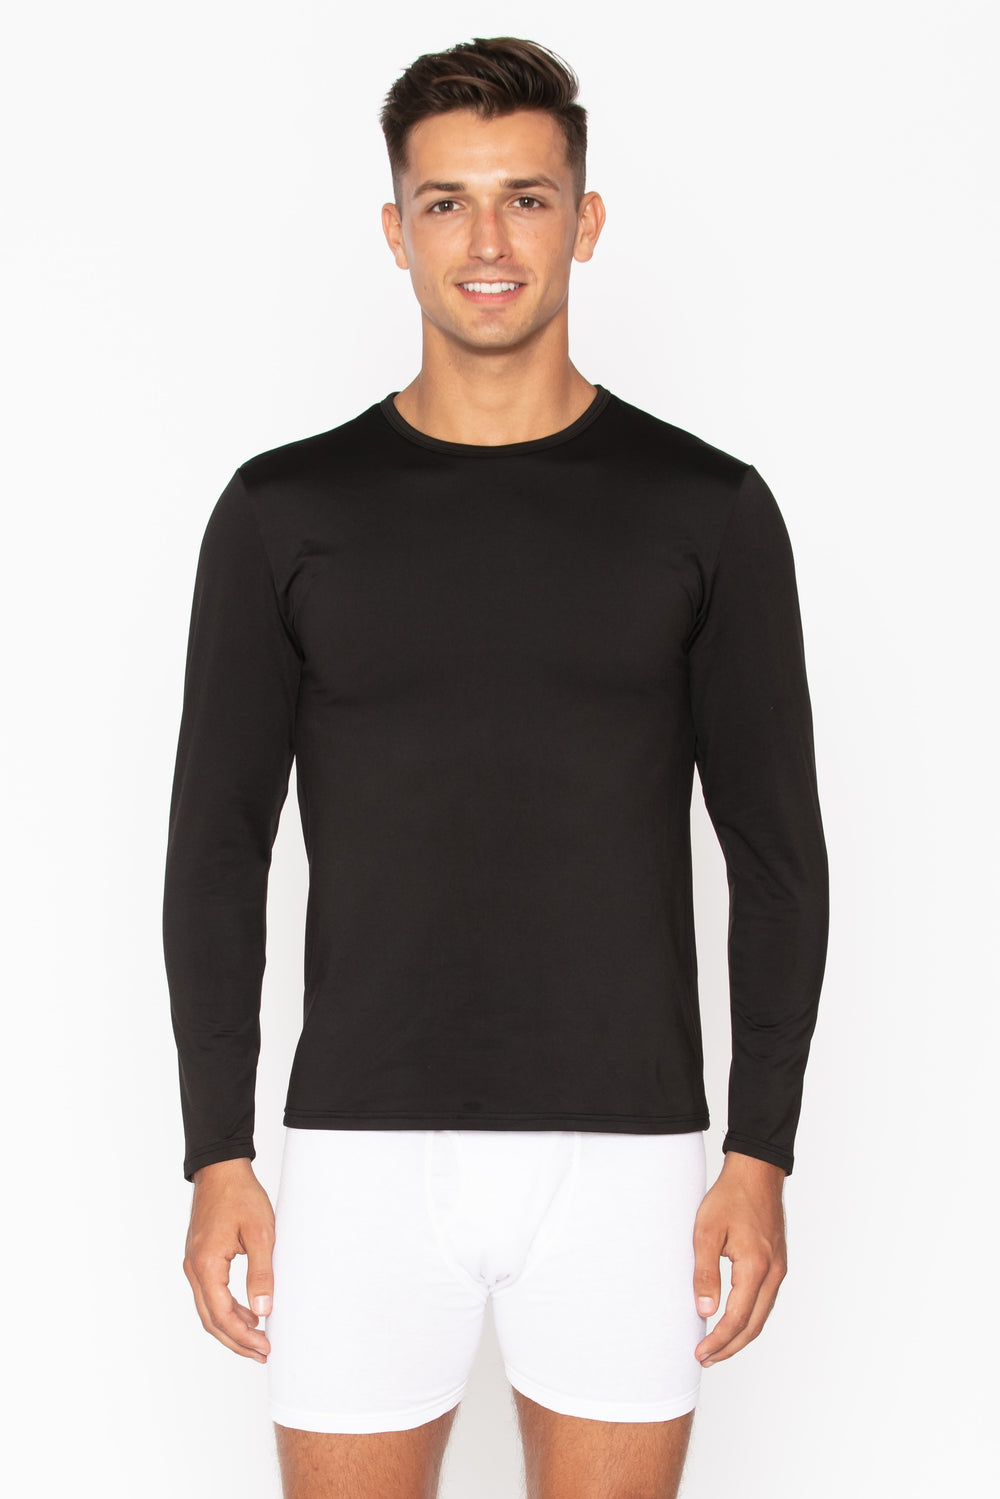 Men's Black Crew Neck Thermal Shirt